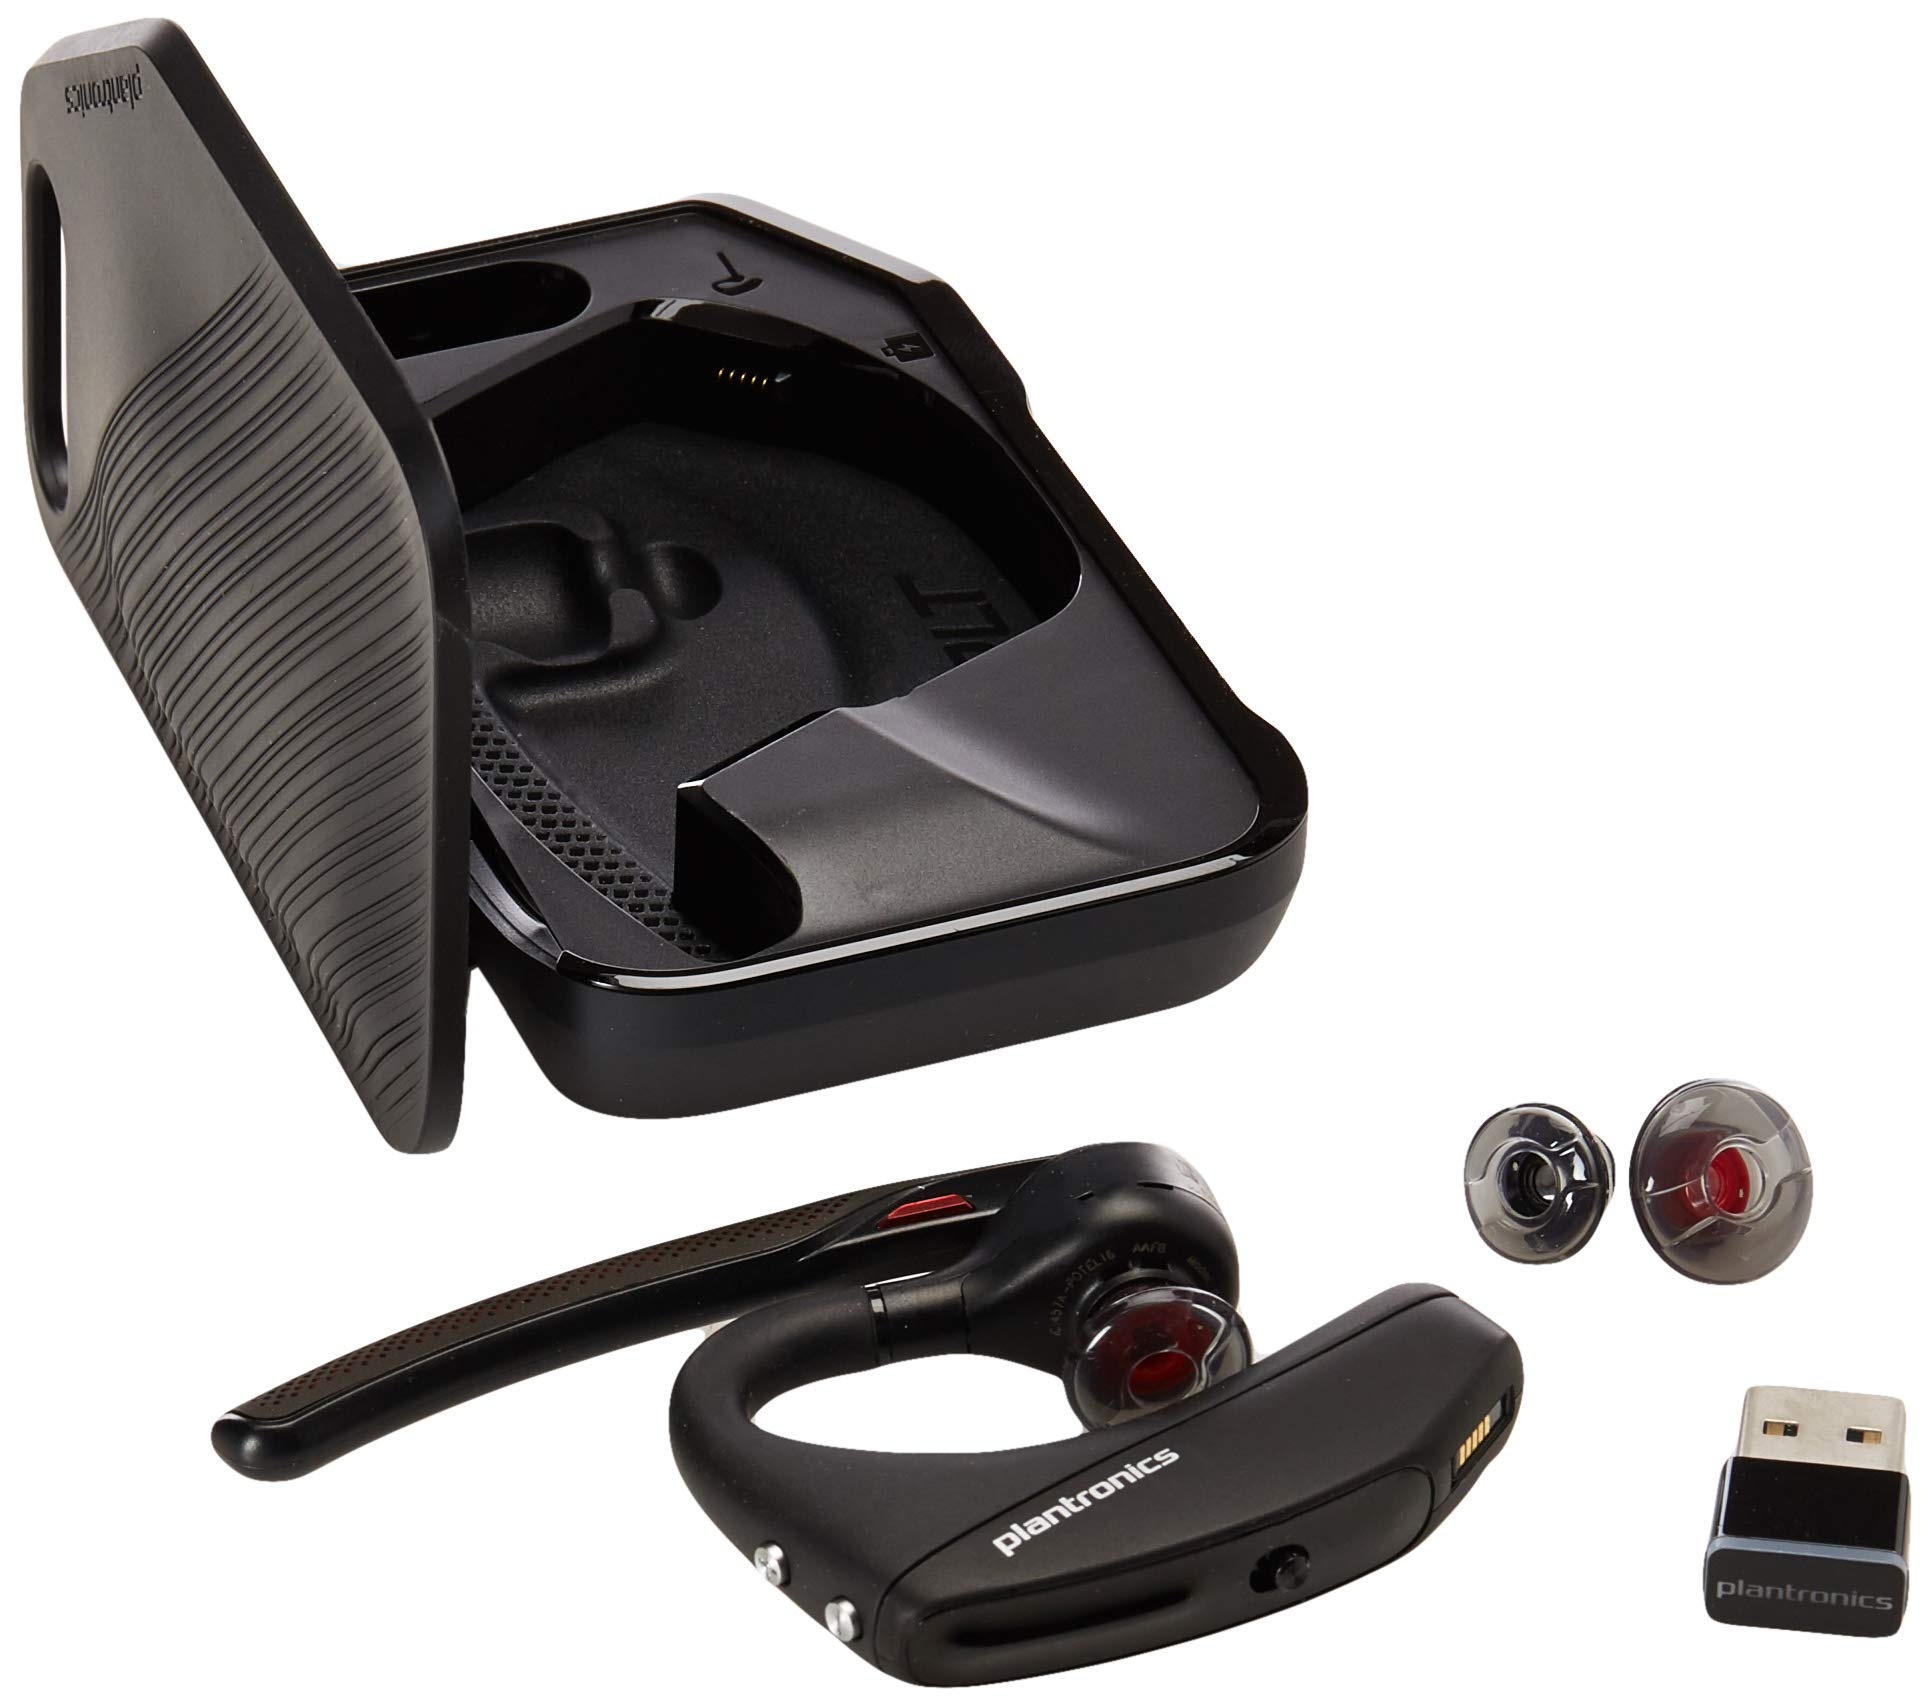 Plantronics VOYAGER-5200-UC (206110-01) Advanced NC Bluetooth Headsets System by Plantronics (Image #1)